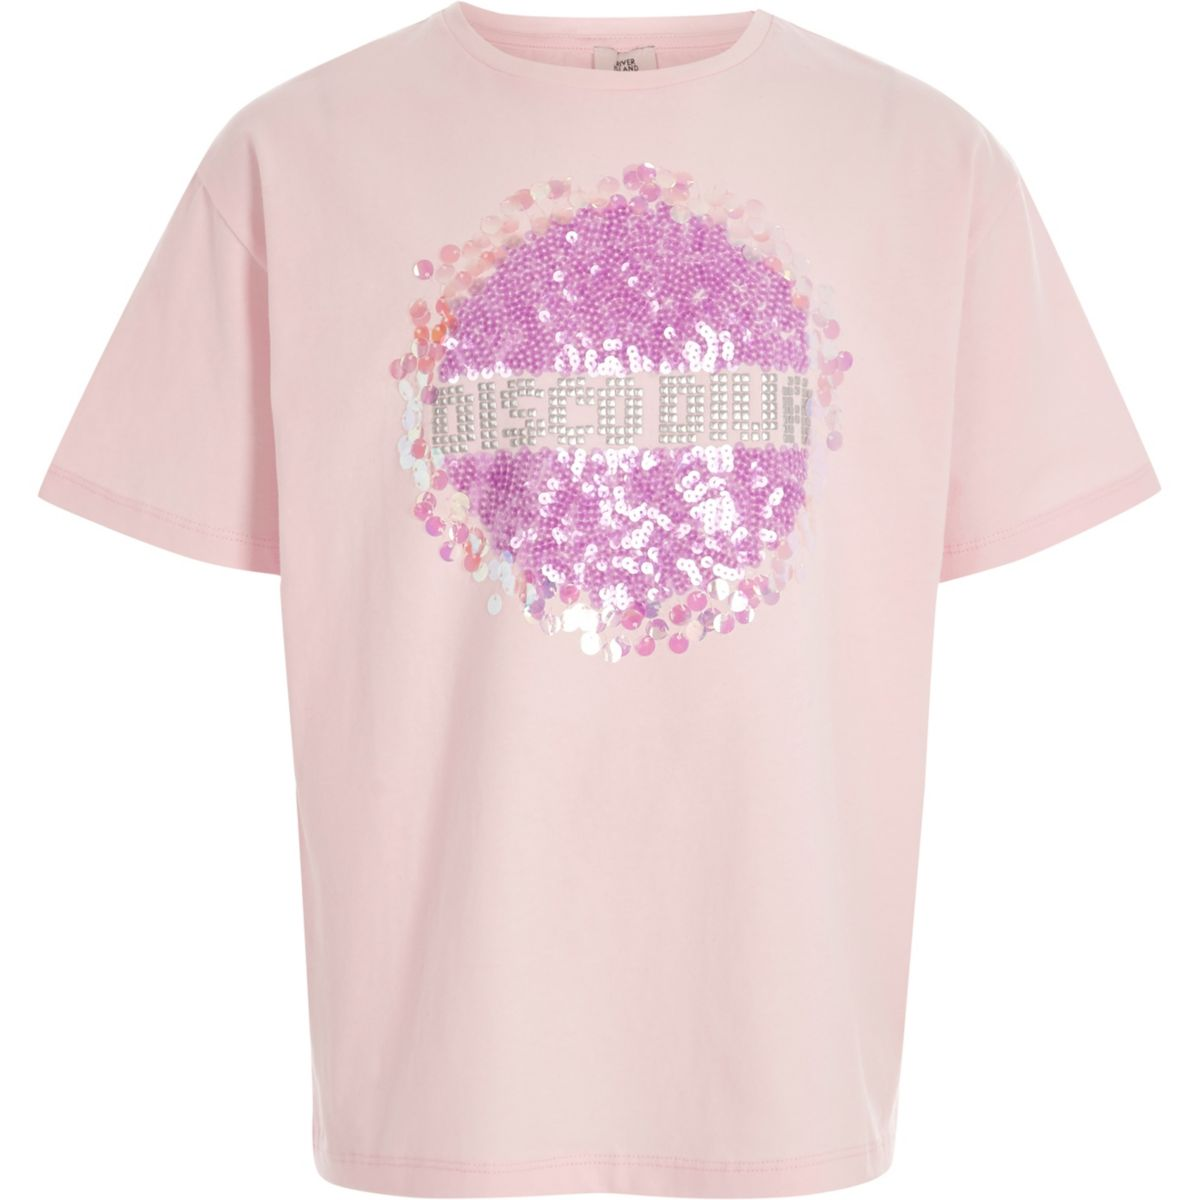 Girls light pink 39 disco diva 39 sequin t shirt tops sale for Girls sequin t shirt